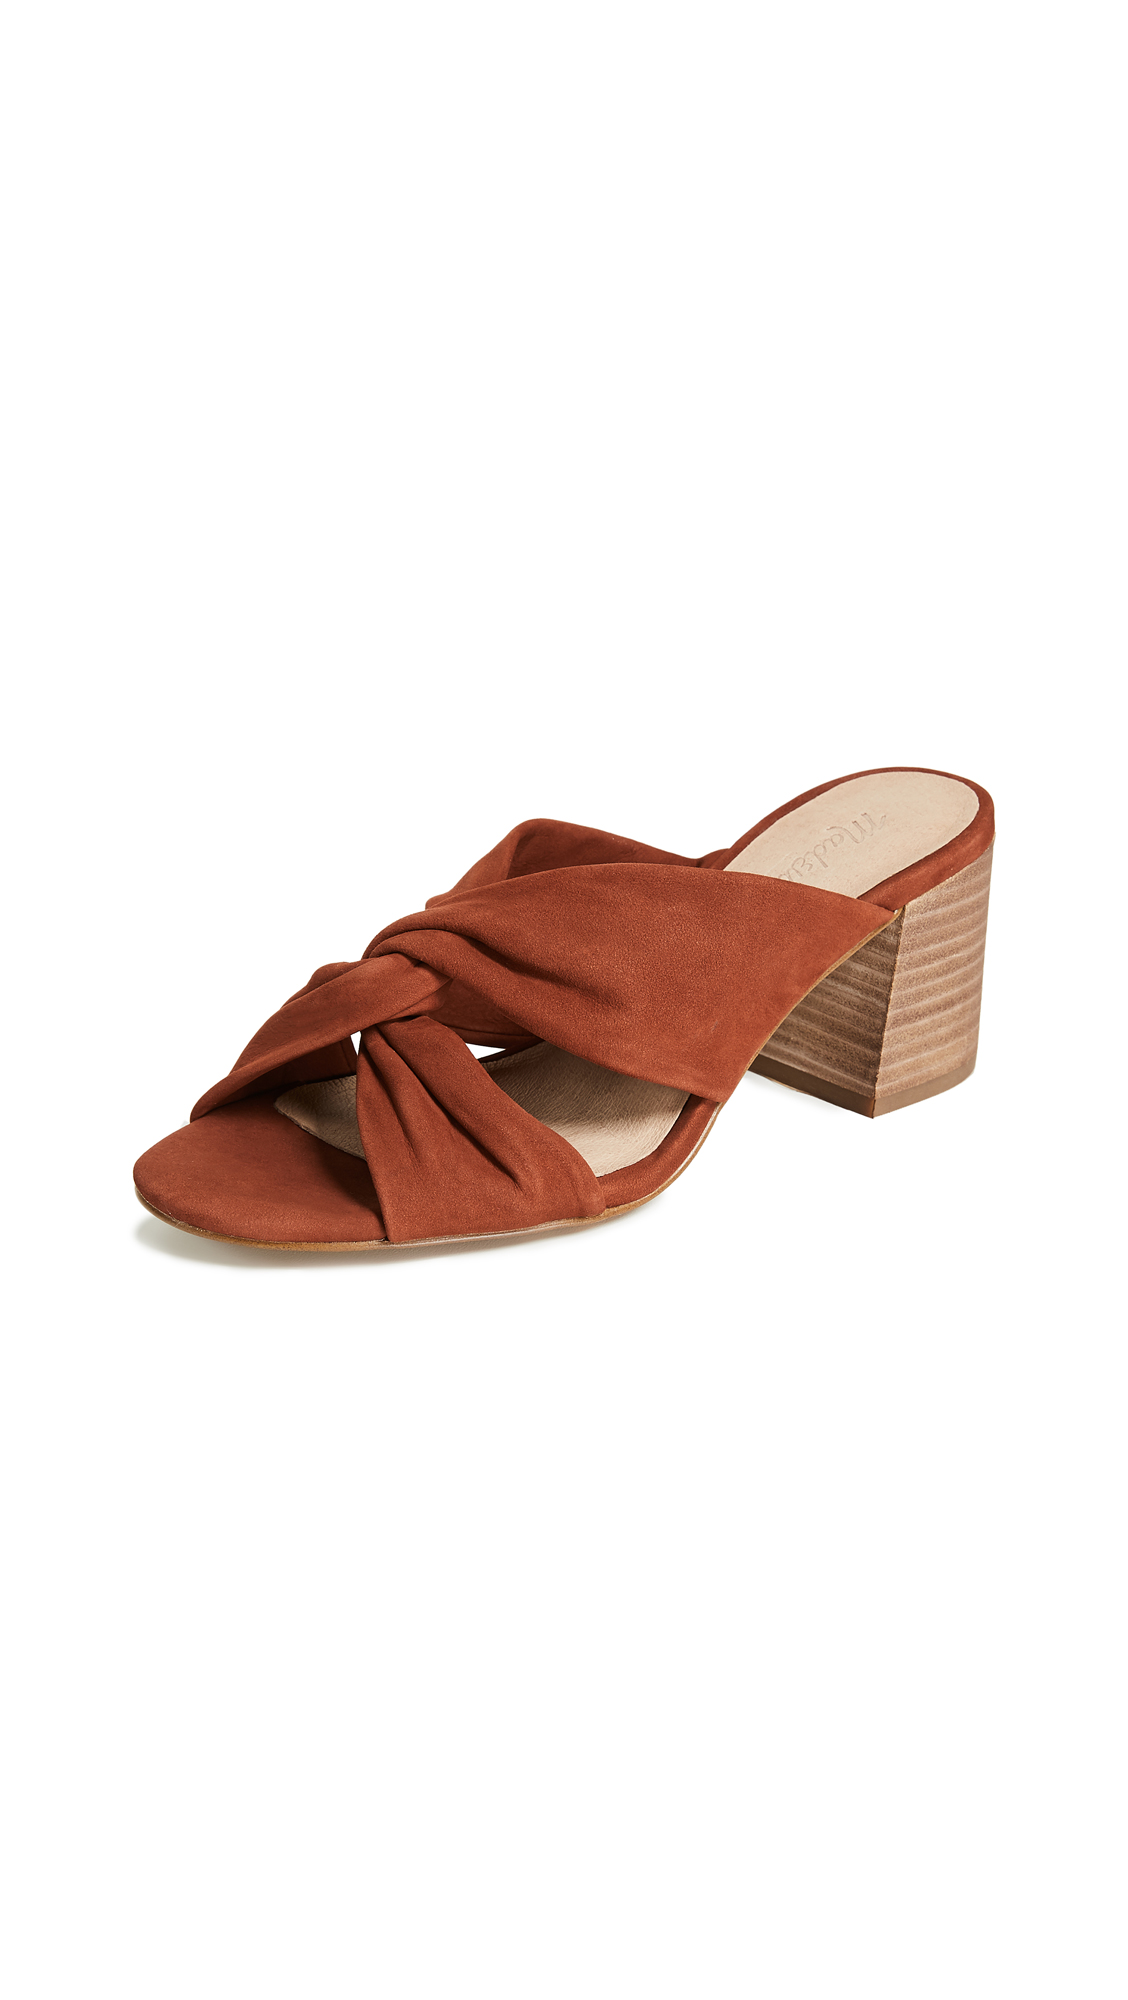 Madewell The Sari Crisscross Sandals - Warm Nutmeg